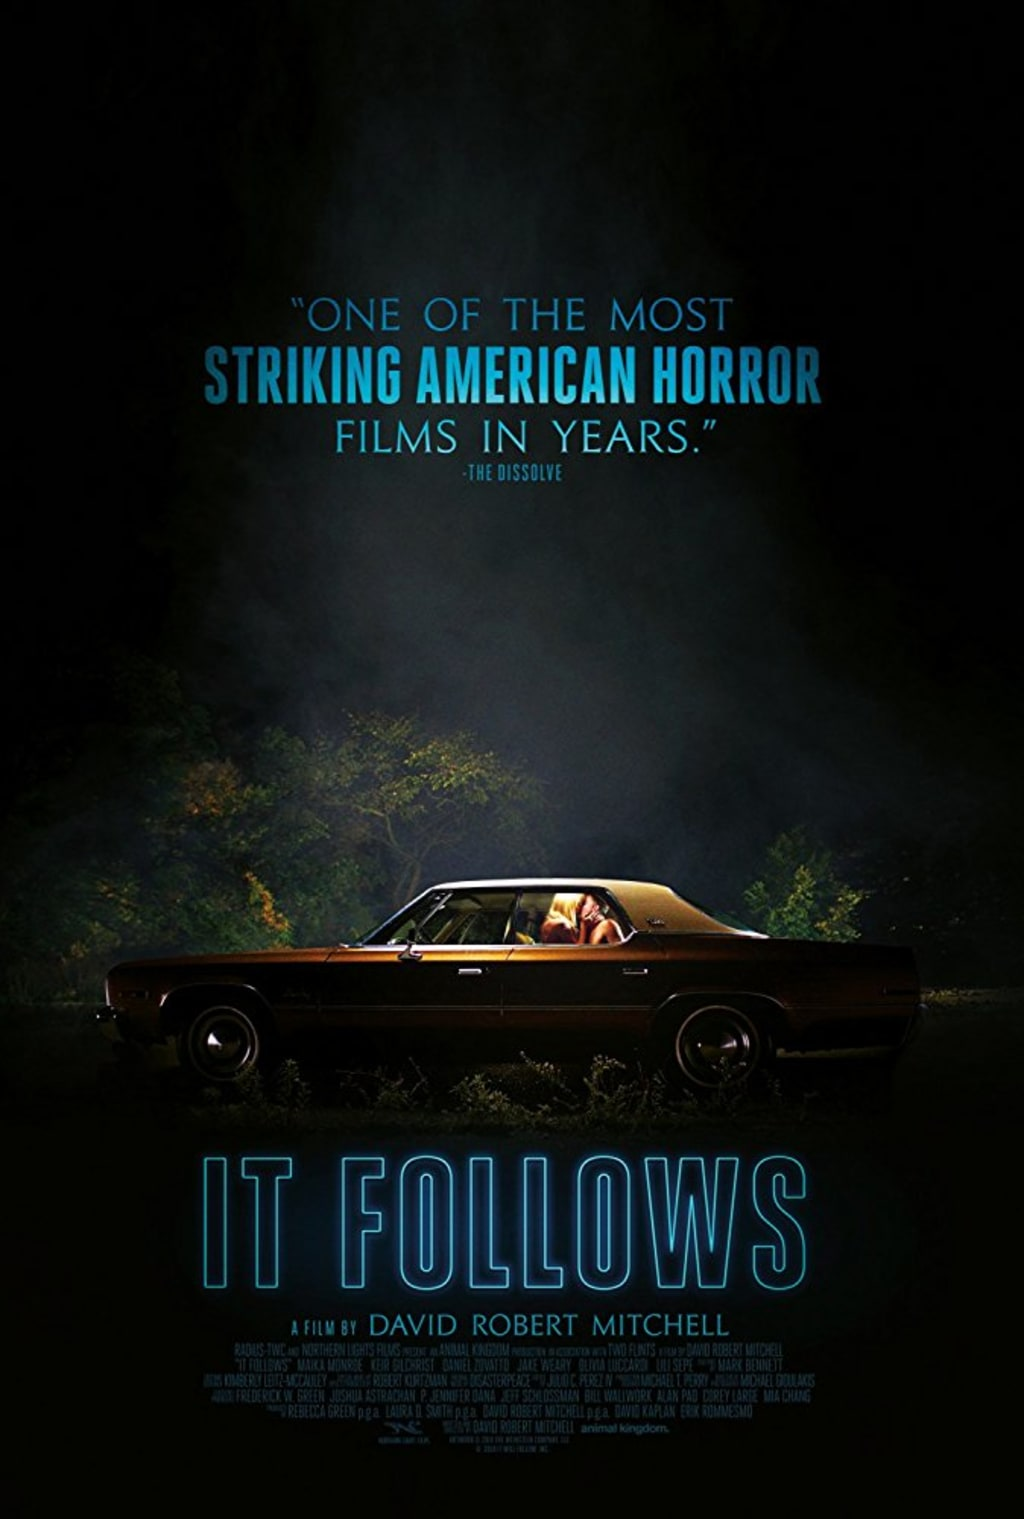 Reed Alexander's Horror Review of 'It Follows'